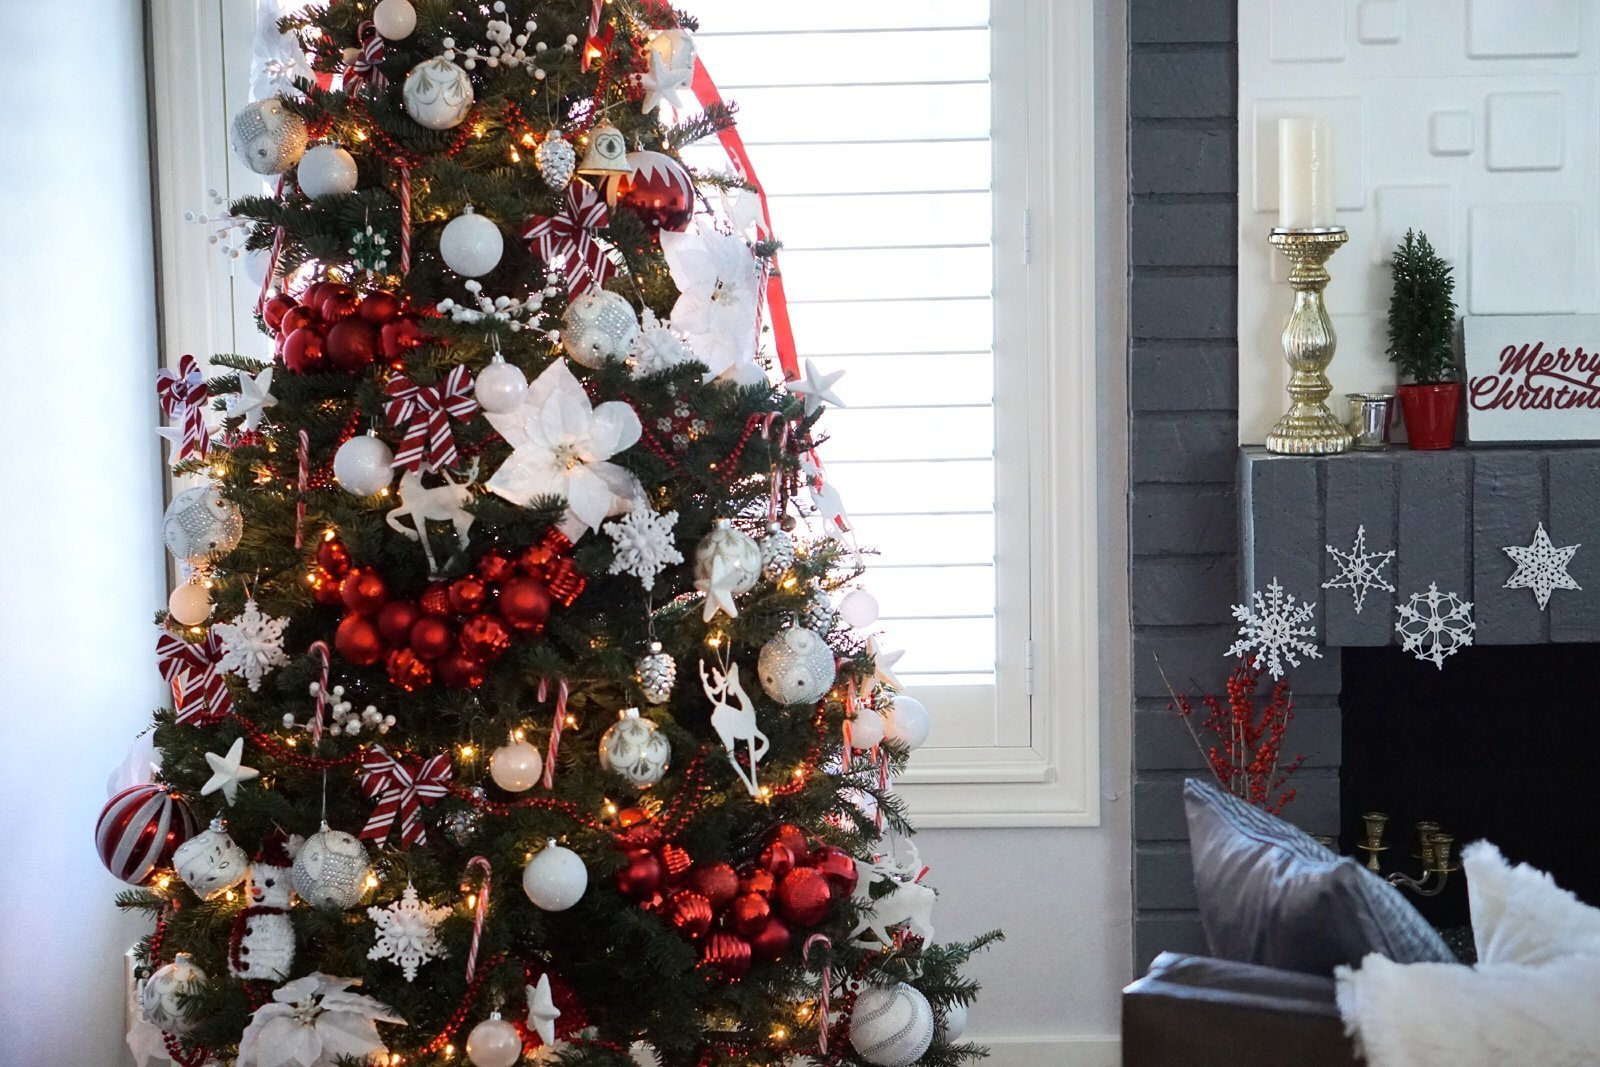 5 Tips: How to Decorate a Christmas Tree on a Budget Like a Pro!